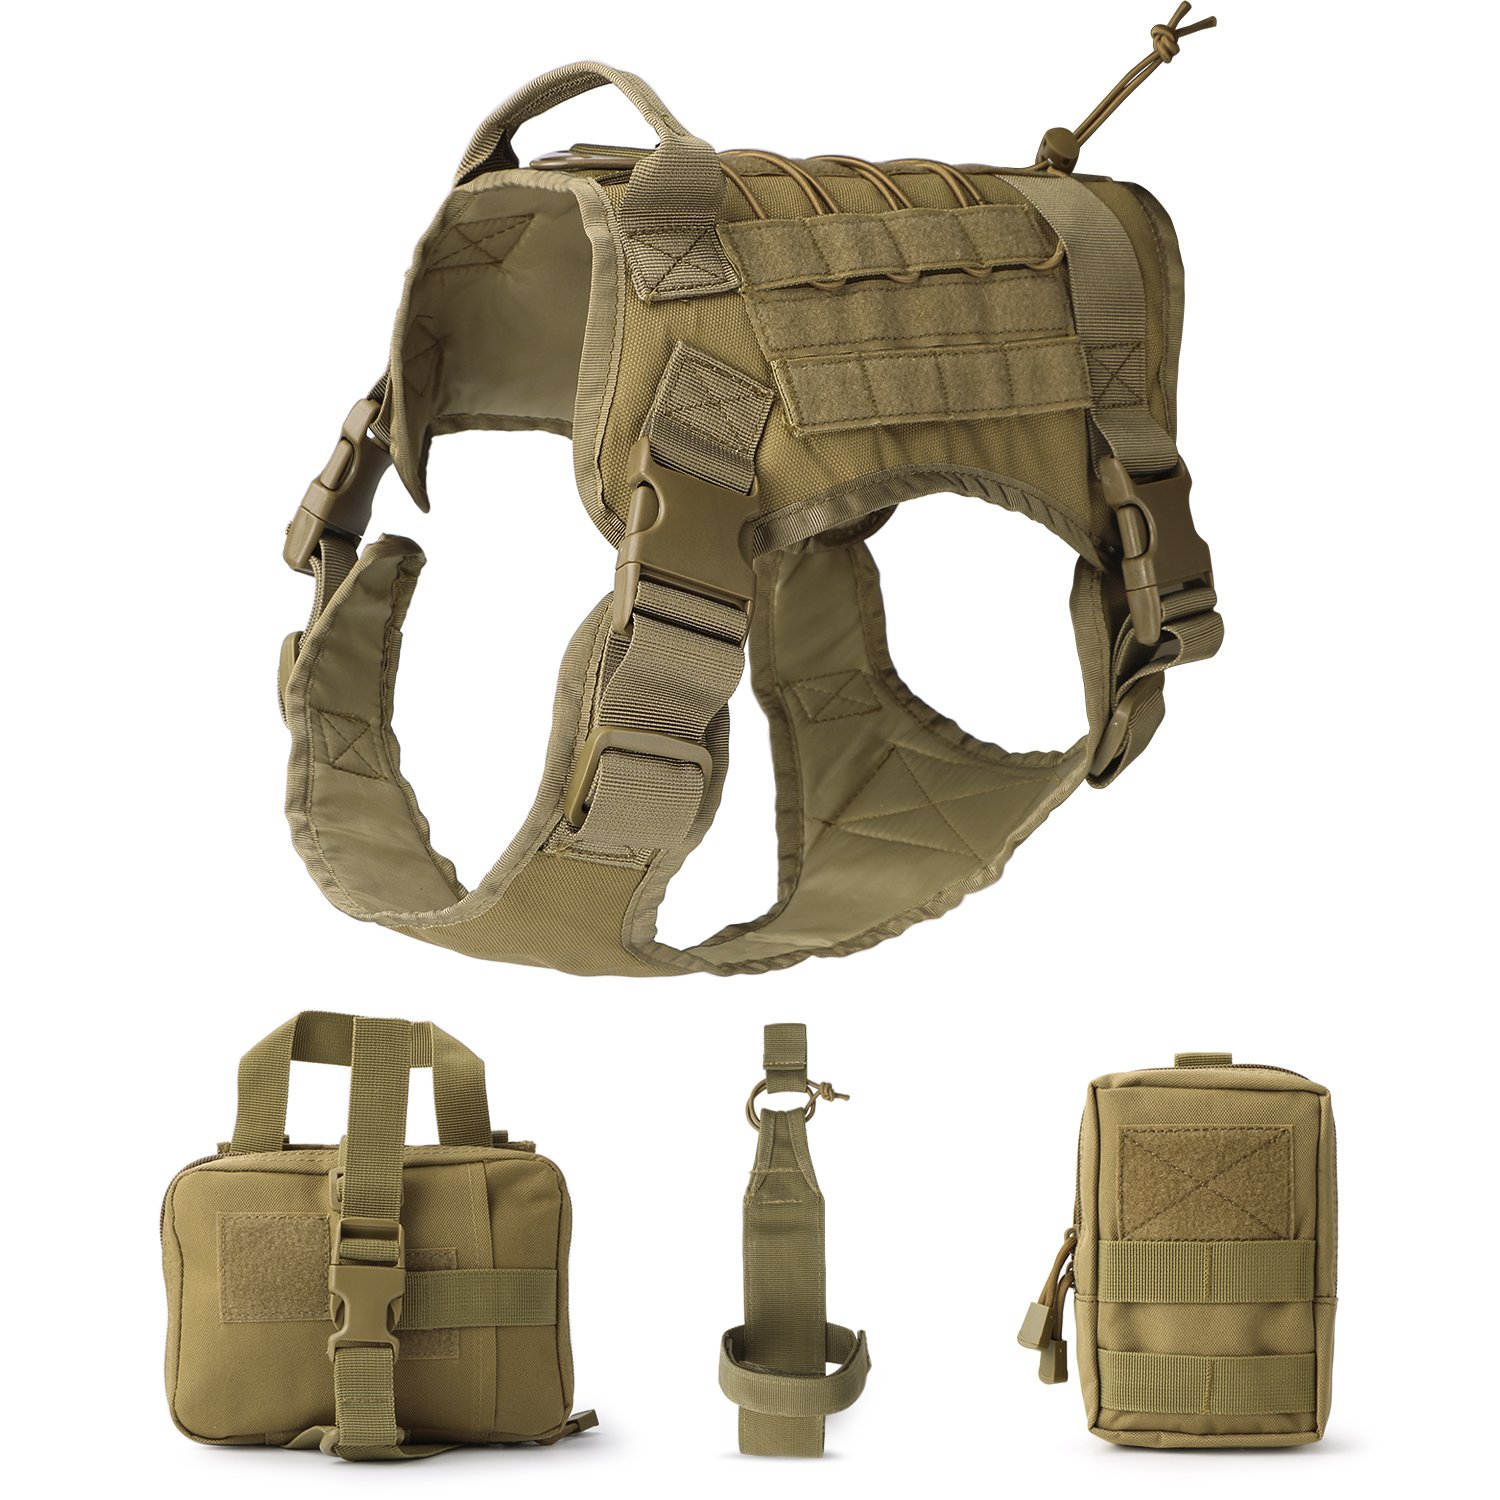 JASGOOD Tactical Dog Vest Military Harness With Detachable Molle Pouches/Patches Outdoor Training Handle Service Dog Vest by JASGOOD (Image #1)